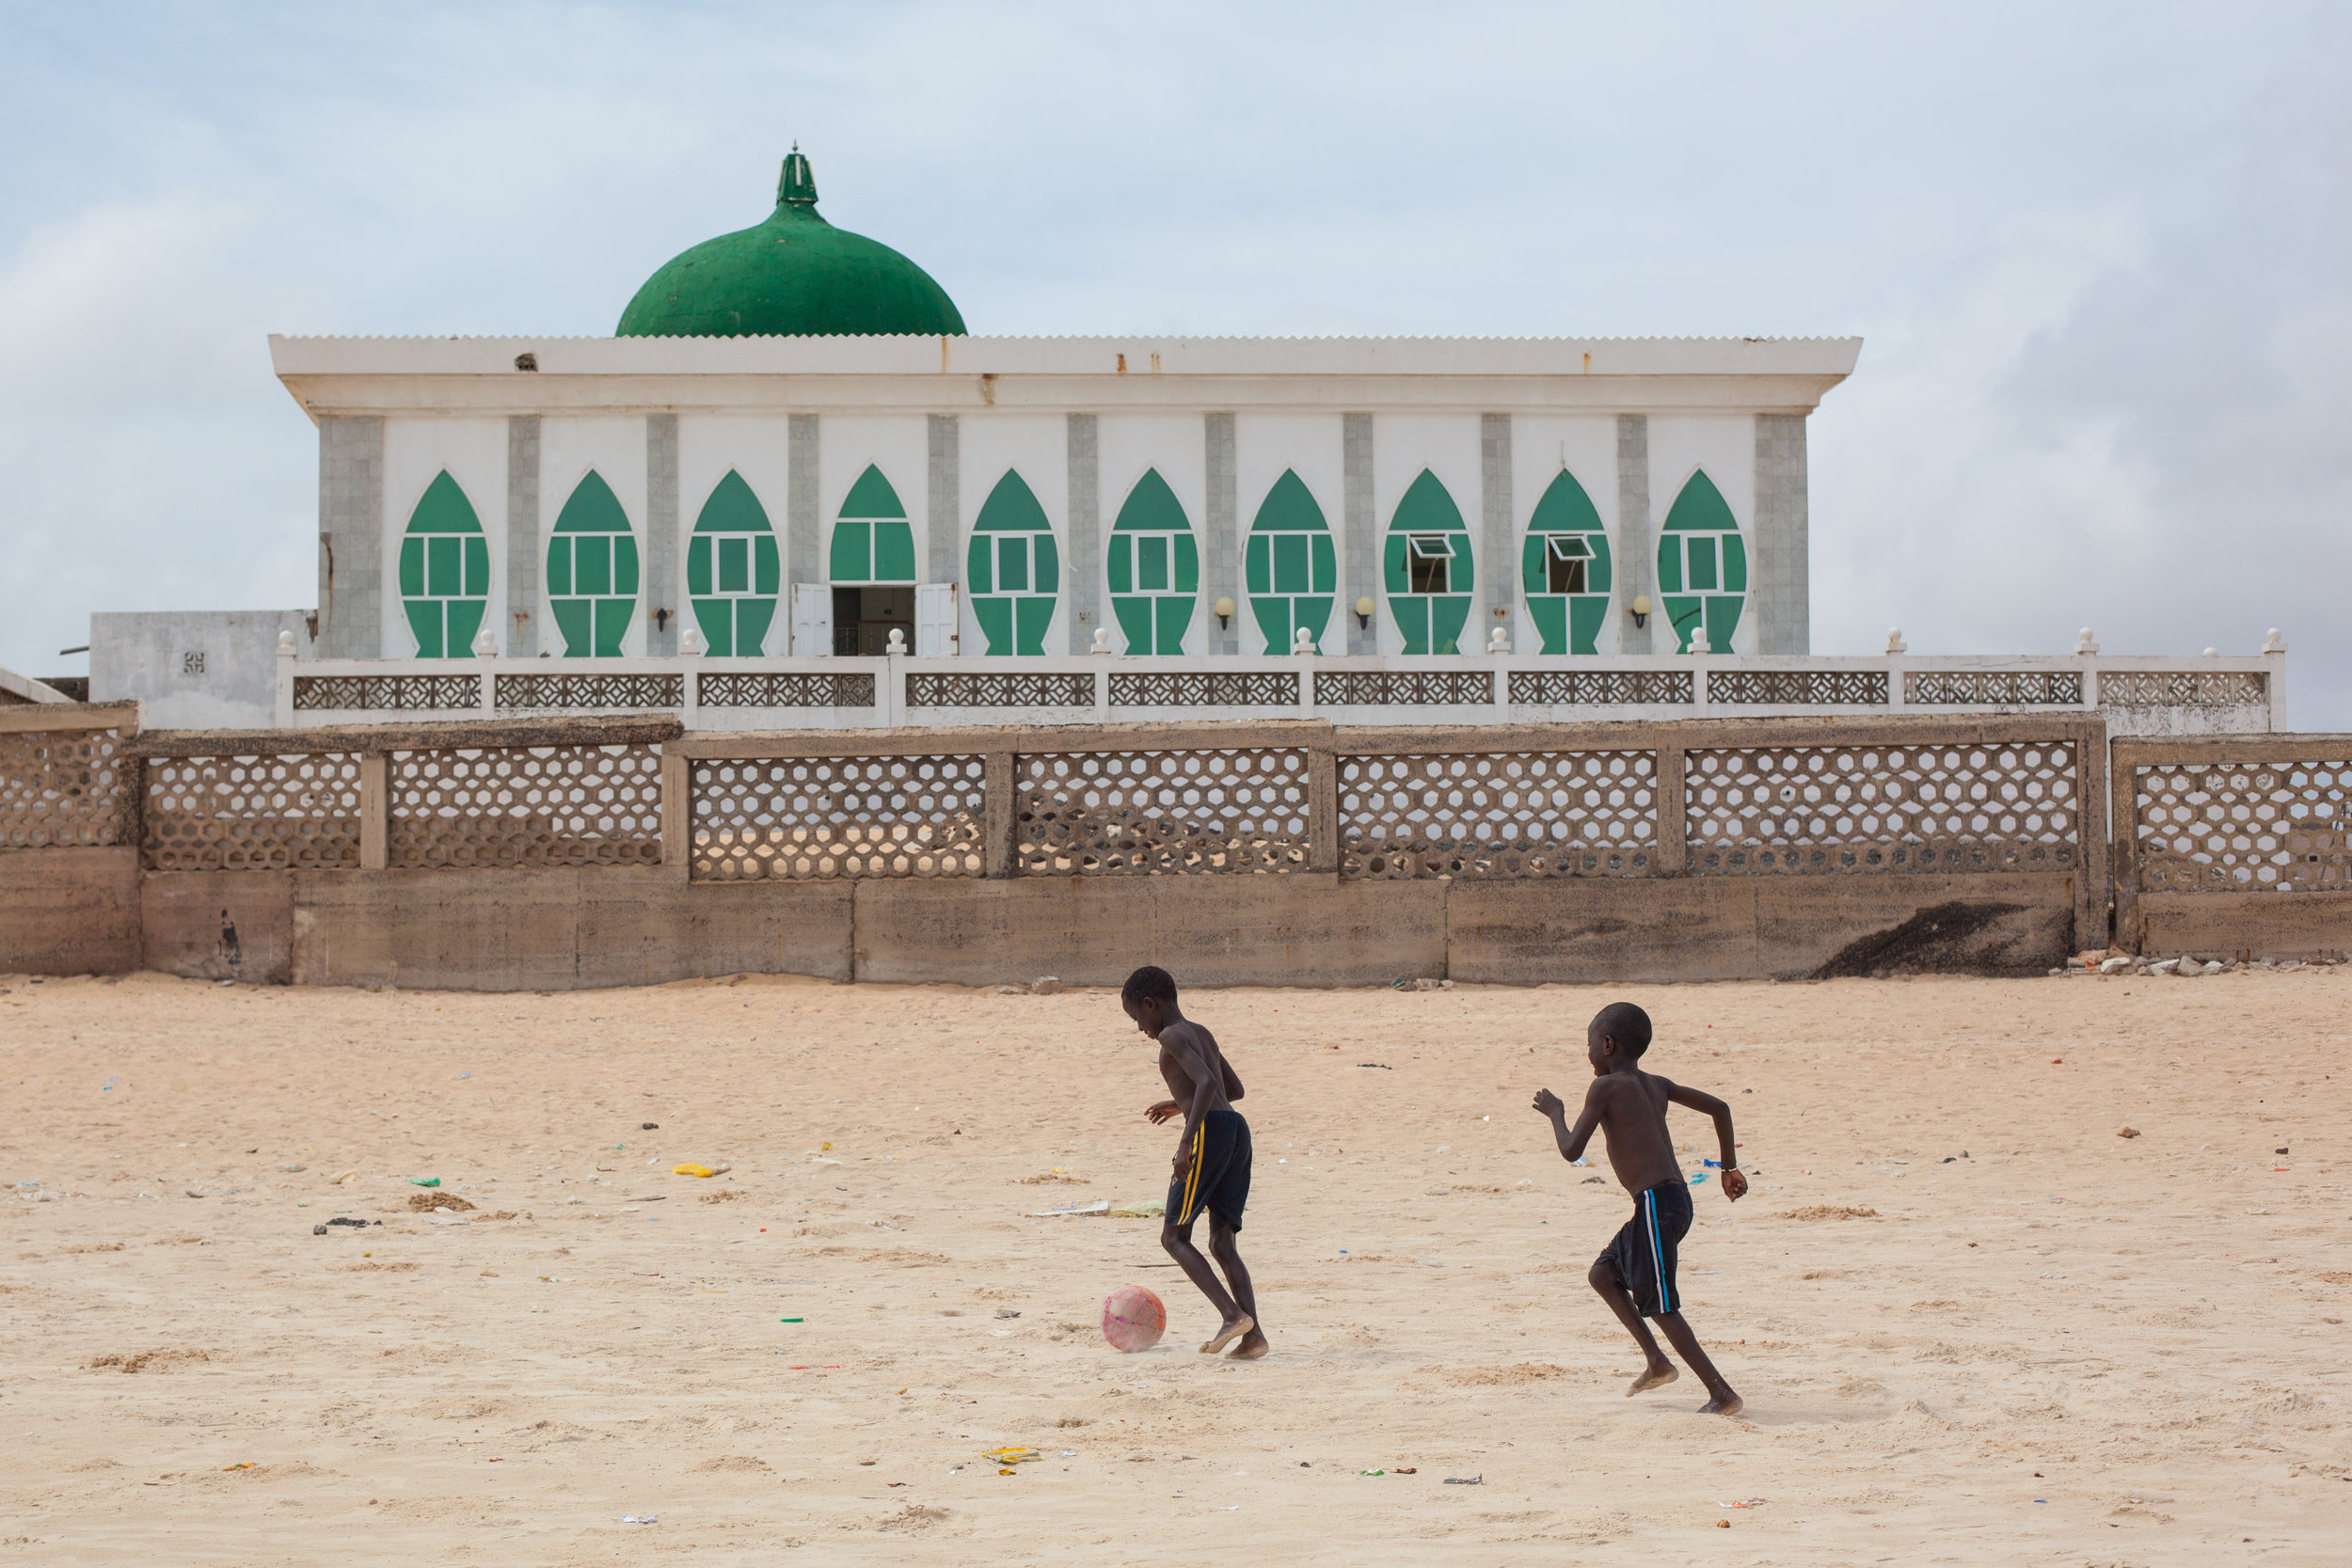 Senegalese Children play football on the beach in front of the large Mosque which overlooks the beach at Yoff in Dakar.